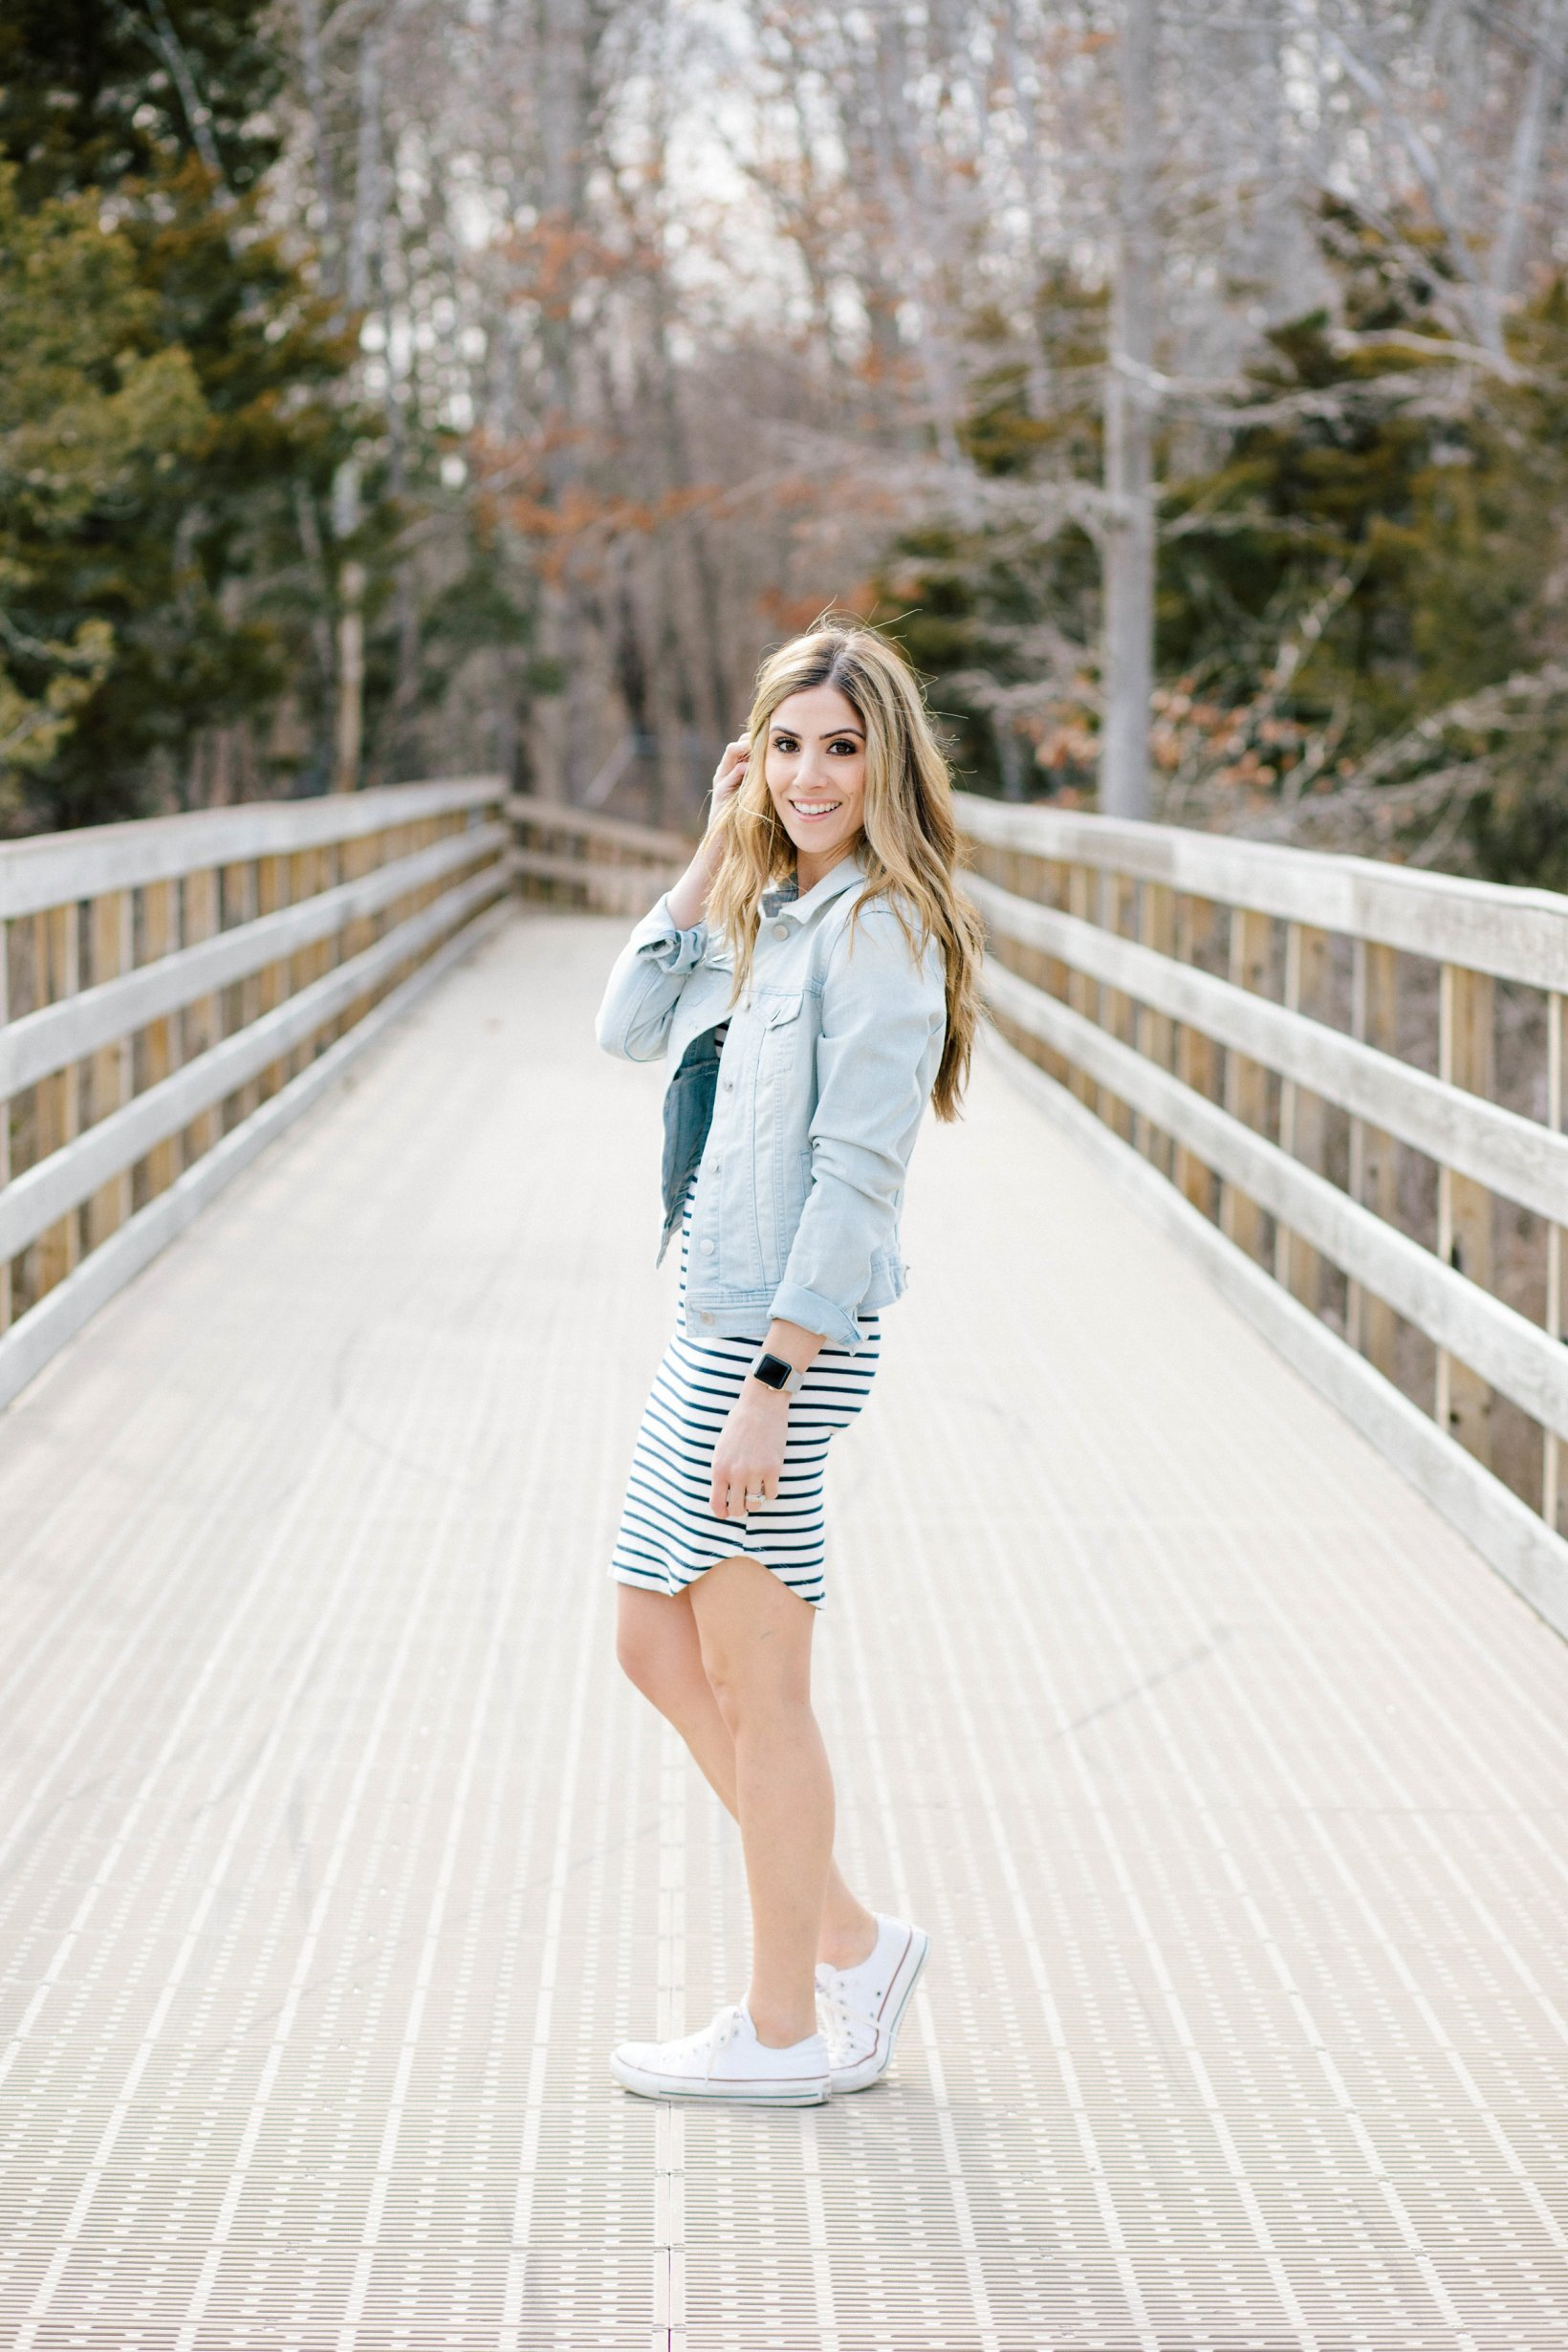 Connecticut life and style blogger Lauren McBride shares some class and versatile fall transitional pieces that will help create a capsule style wardrobe for the season.